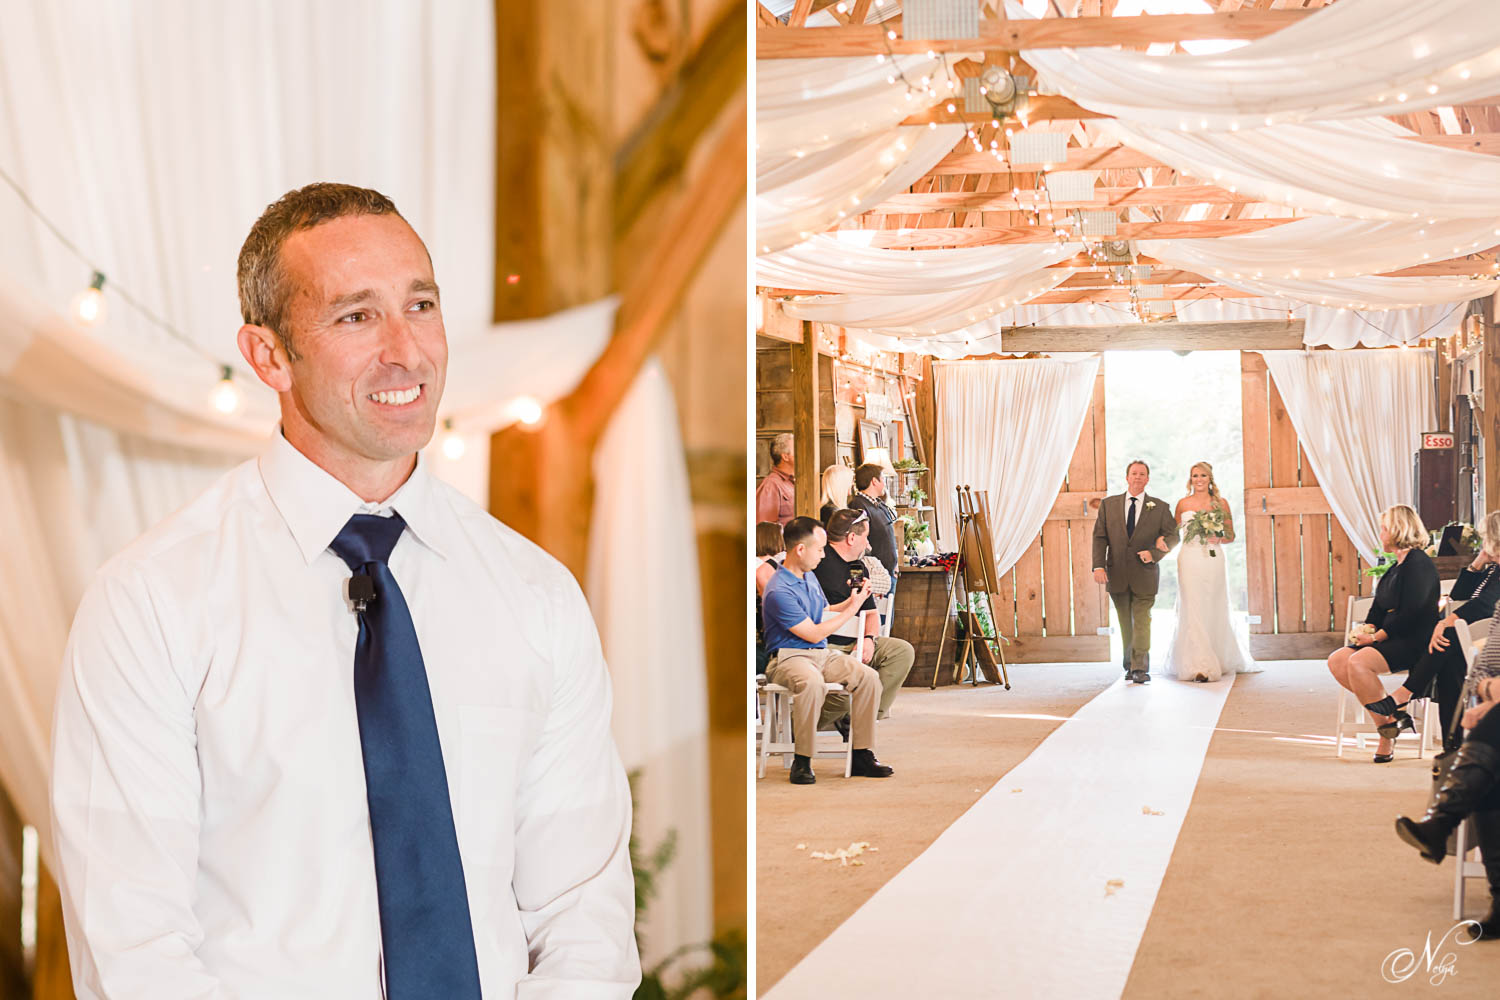 Groom watching his bride come down the aisle at their inside barn wedding ceremony at the barn at drewia hill